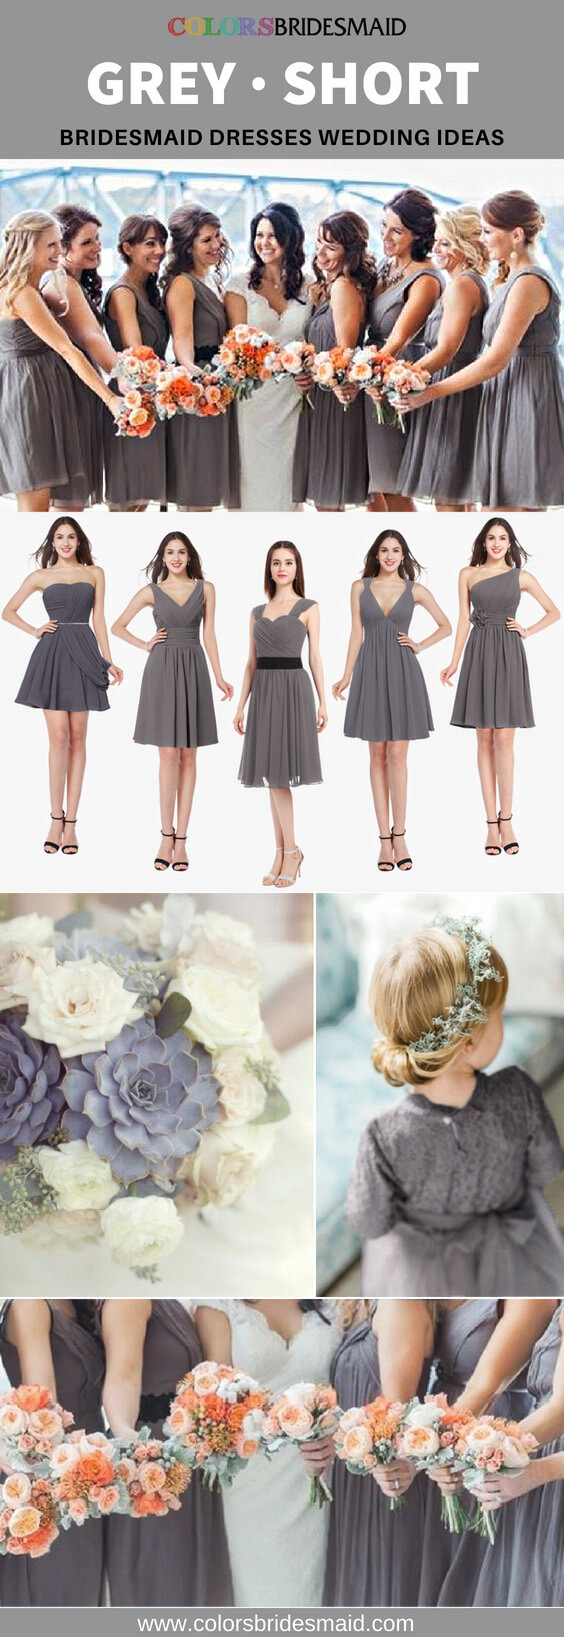 grey bridesmaid dresses short